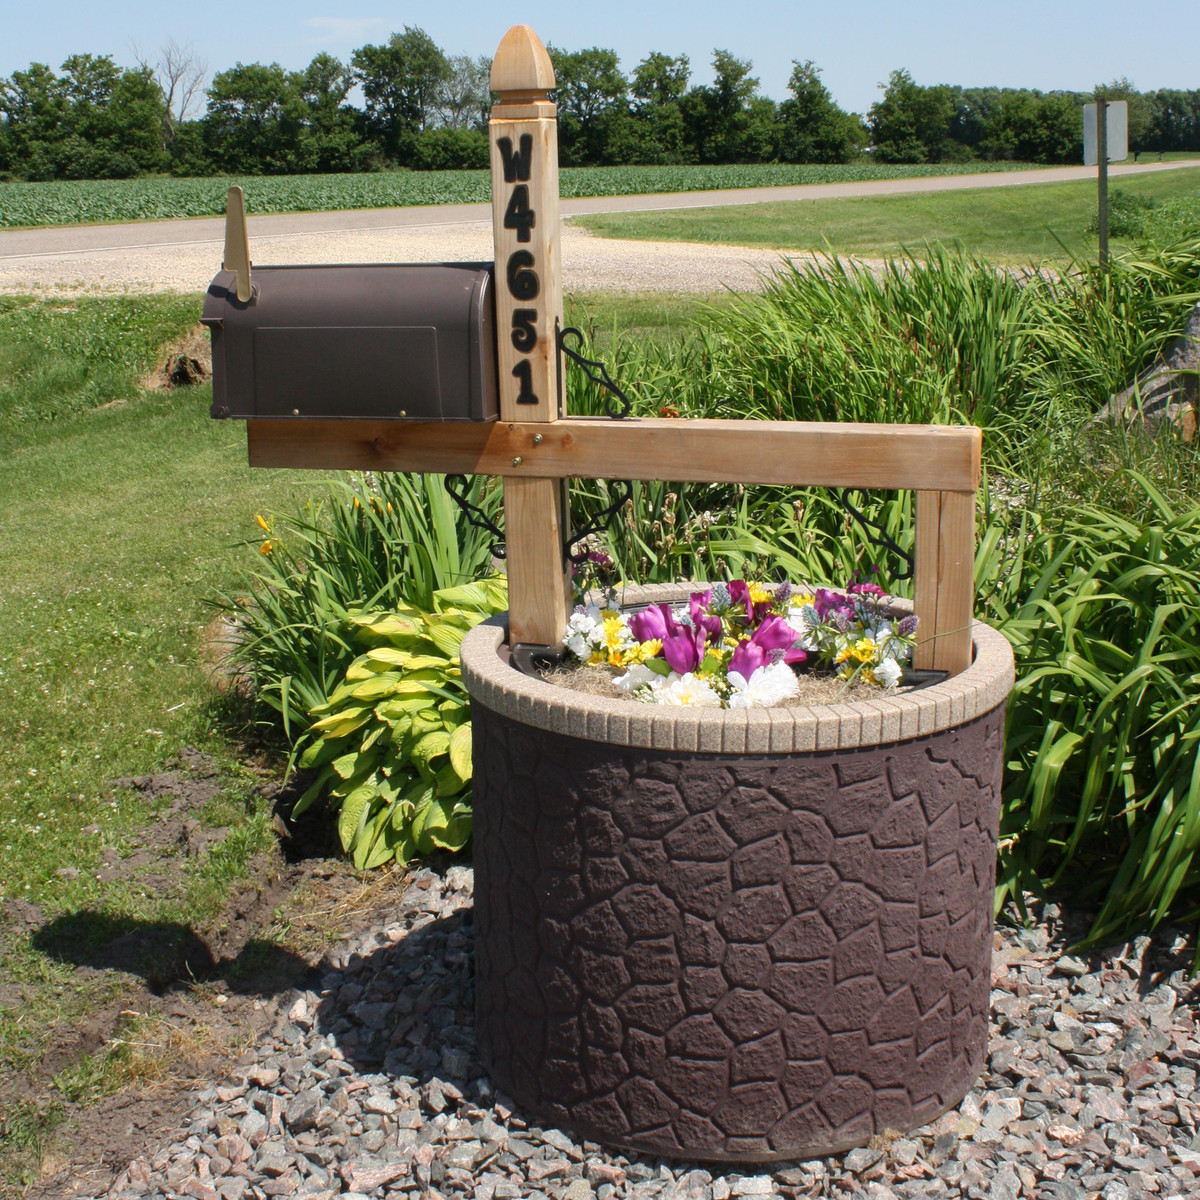 Tanktop Covers Mailbox Post Planter Kit Decorative 35 Inch Round Base Flowerbed